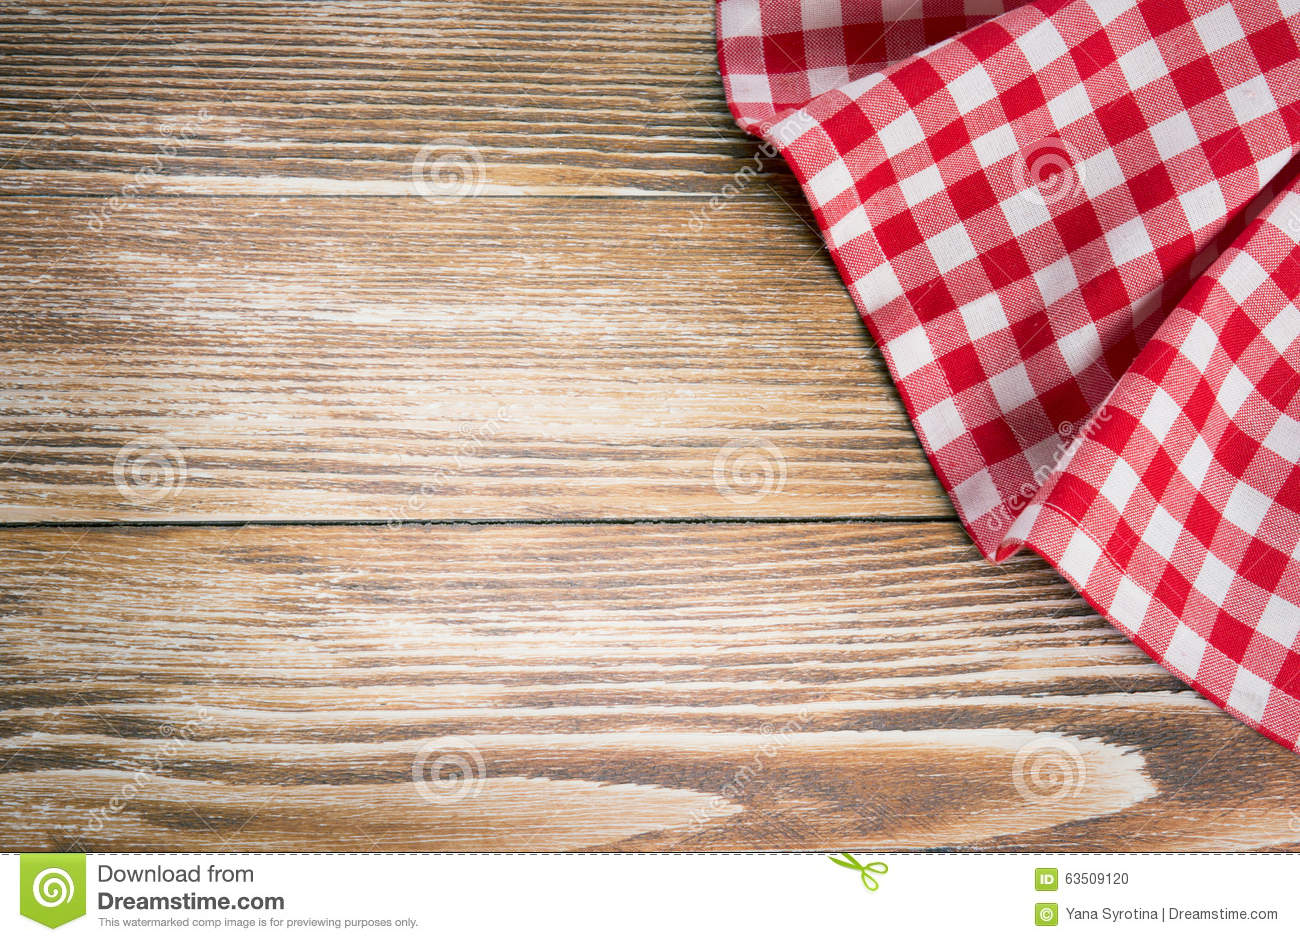 Picnic Table Background empty picnic table background stock photos, images, & pictures